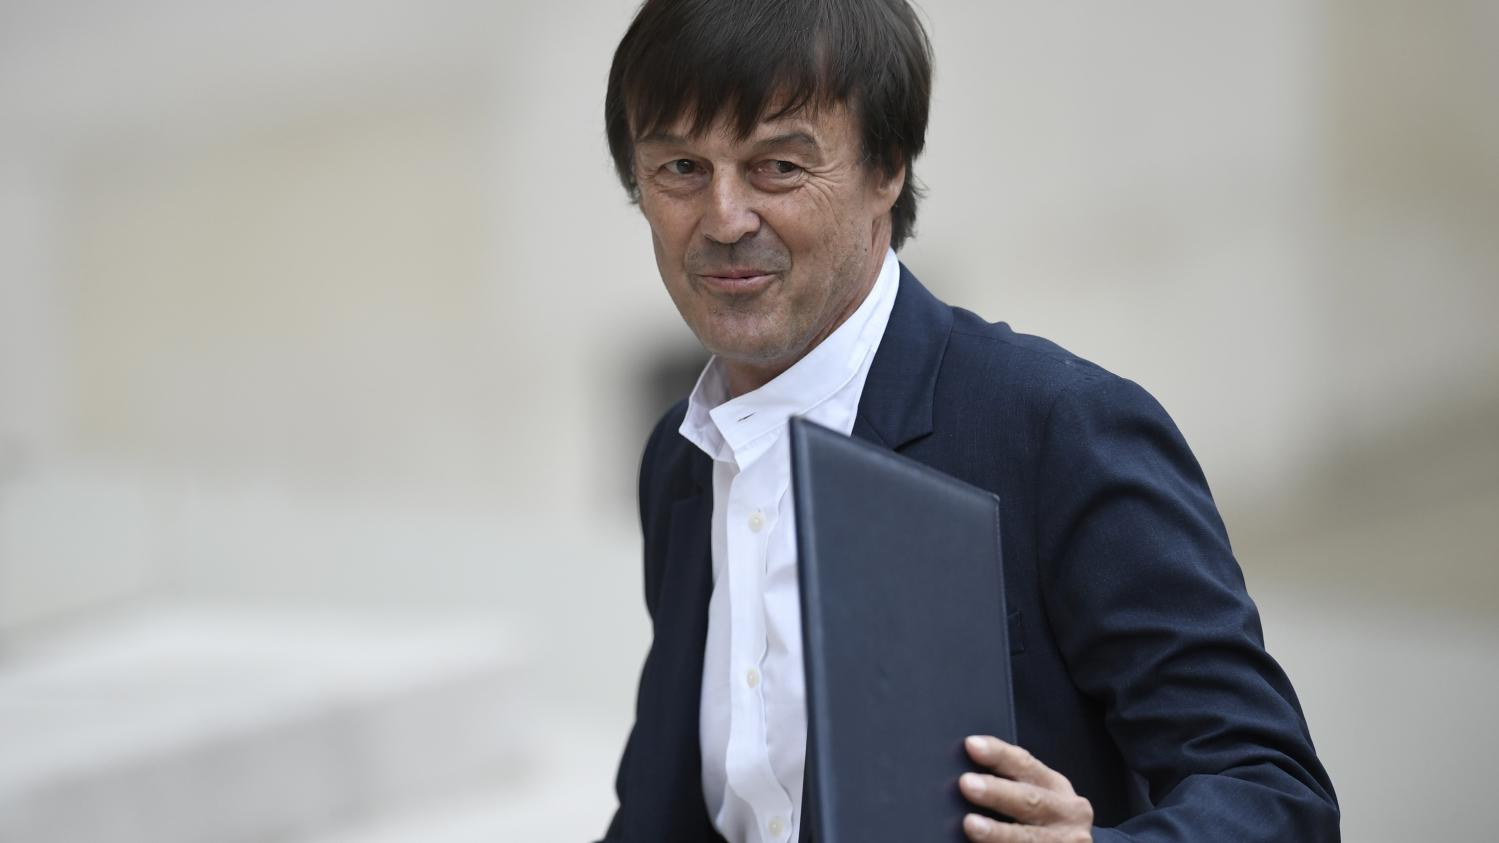 direct plan climat nicolas hulot fixe pour objectif la fin de la vente des voitures diesel. Black Bedroom Furniture Sets. Home Design Ideas